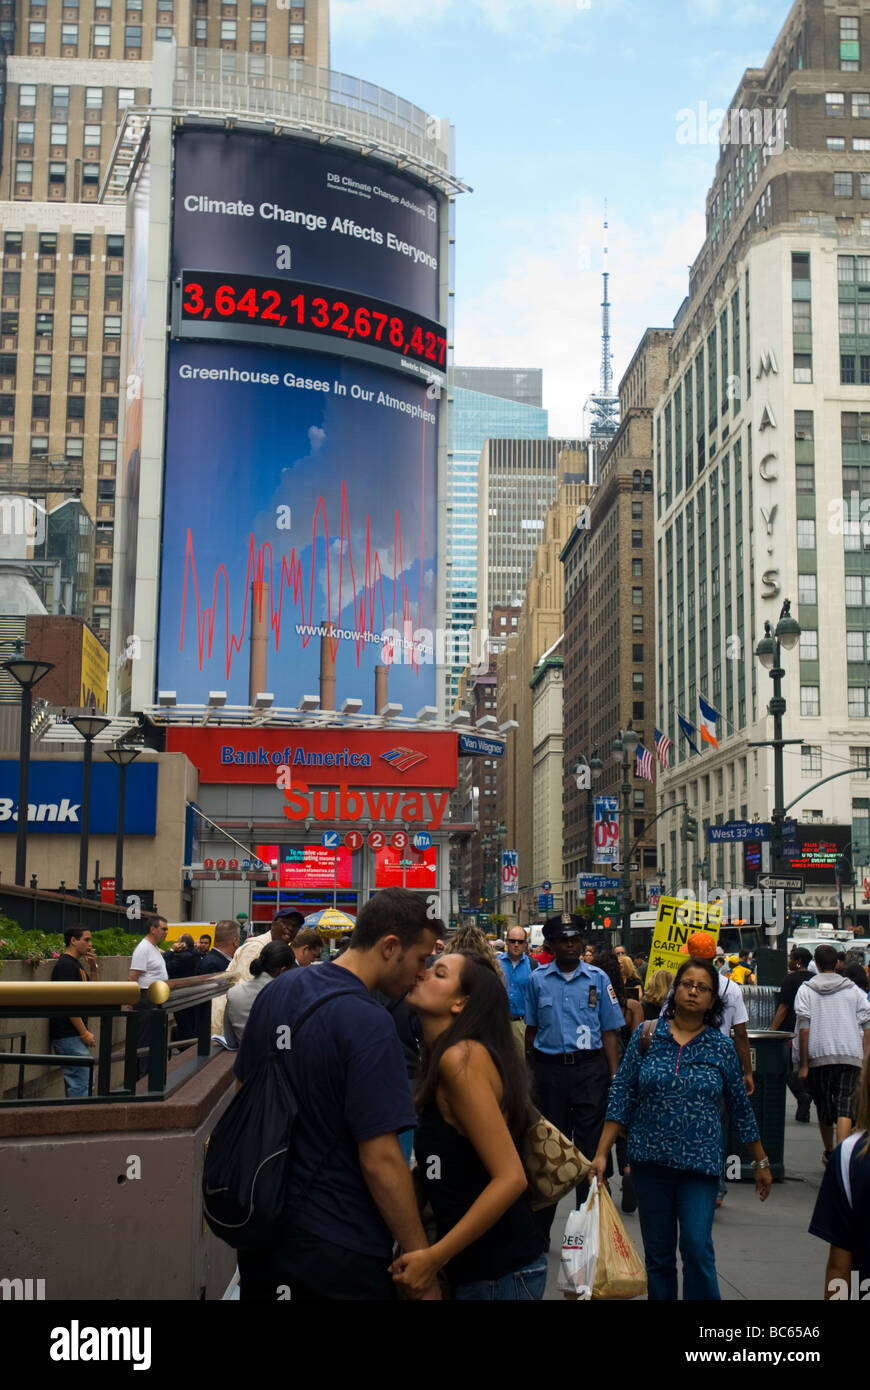 The Carbon Counter billboard in New York tracks the amount of greenhouse gases in the atmosphere - Stock Image